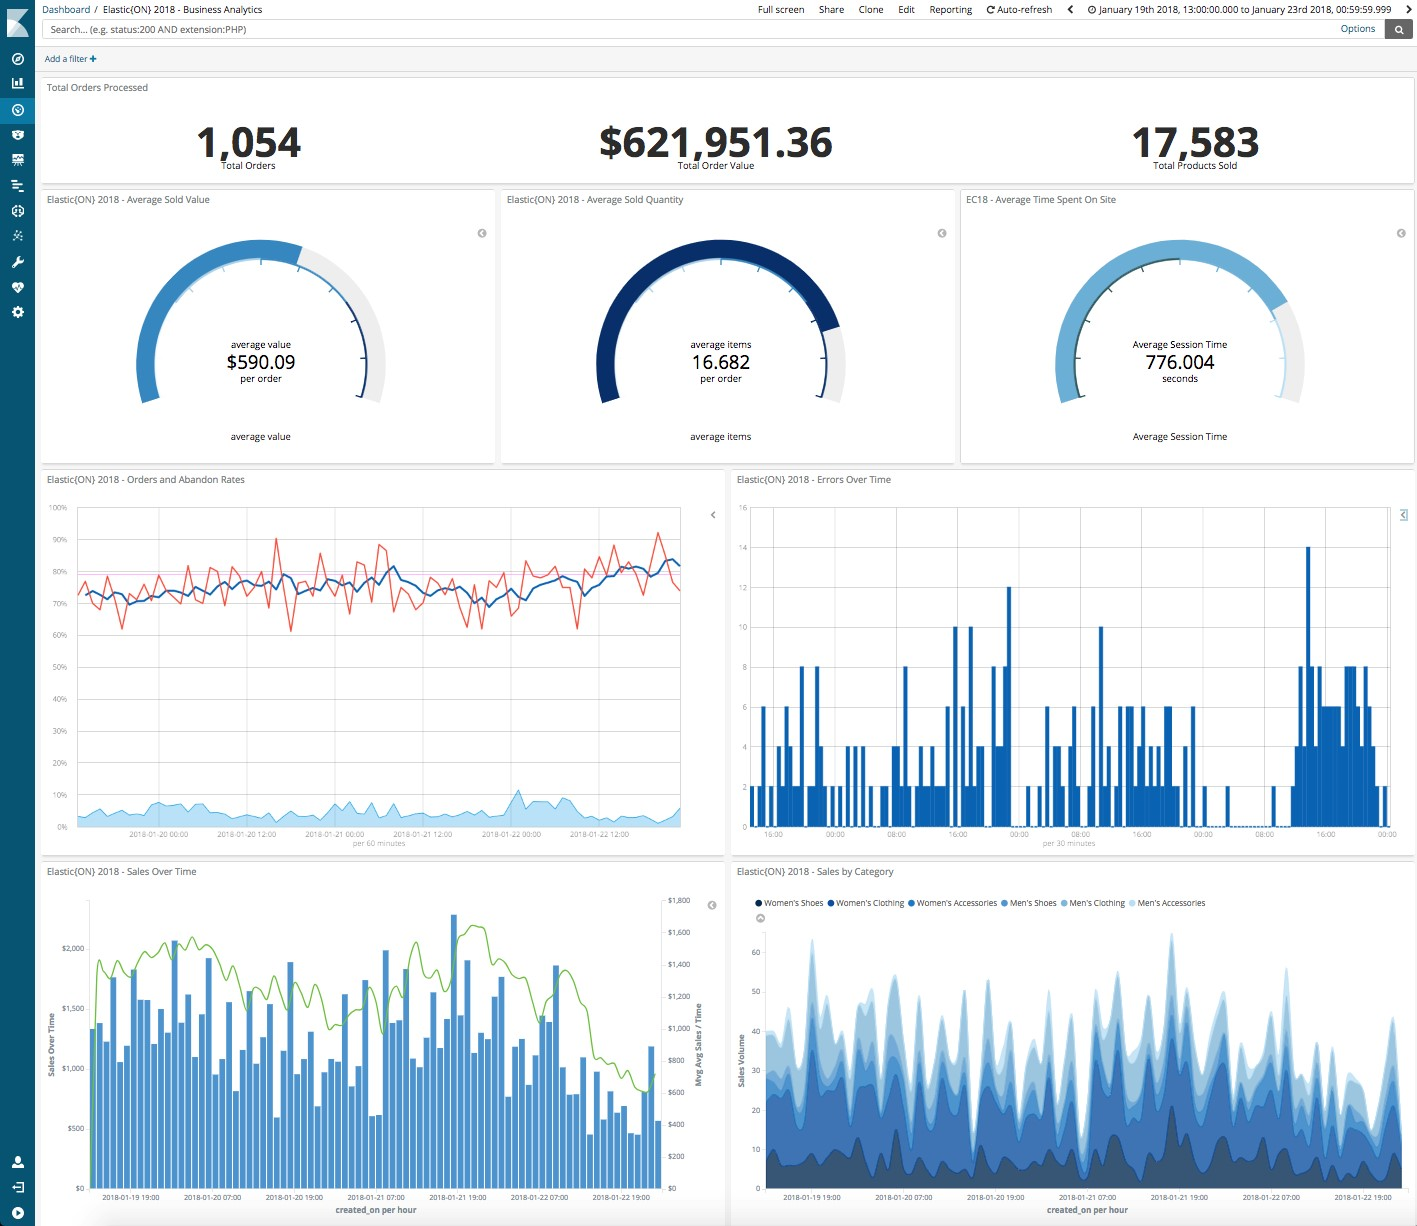 Figure 1: Example of a Kibana dashboard showing customer activities and revenues in real time